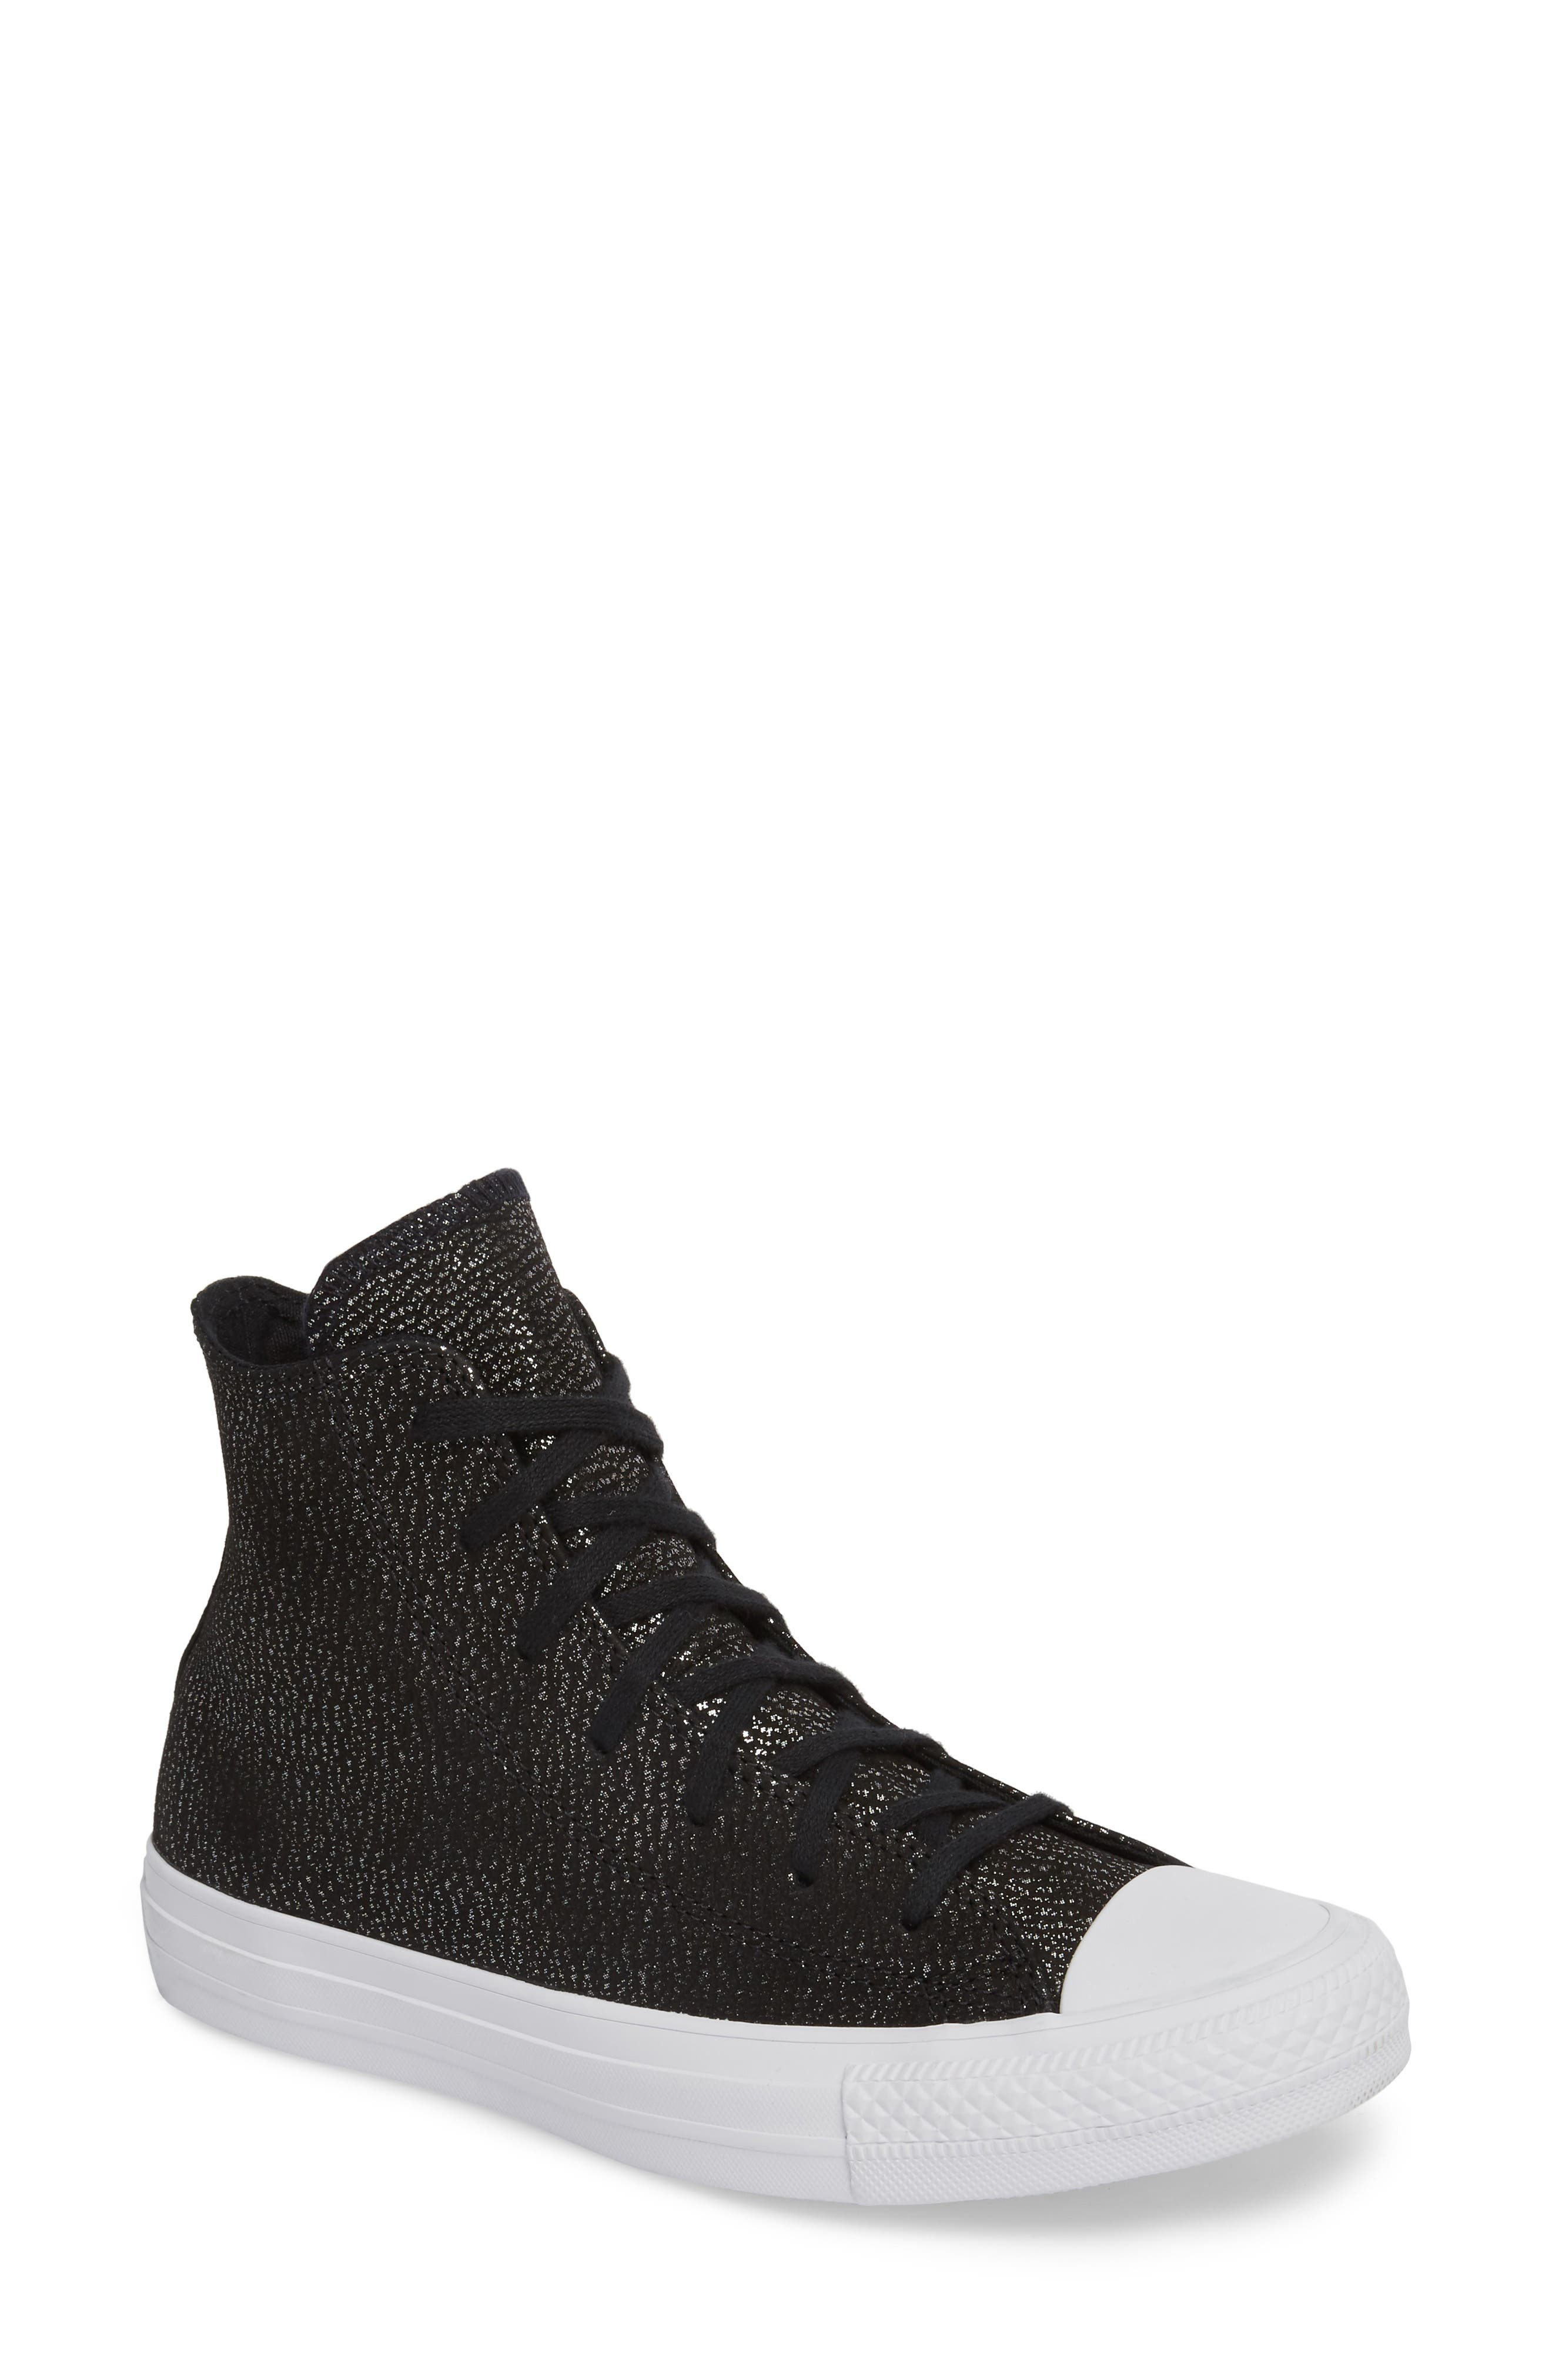 Chuck Taylor<sup>®</sup> All Star<sup>®</sup> Tipped Metallic High Top Sneaker,                         Main,                         color, Black